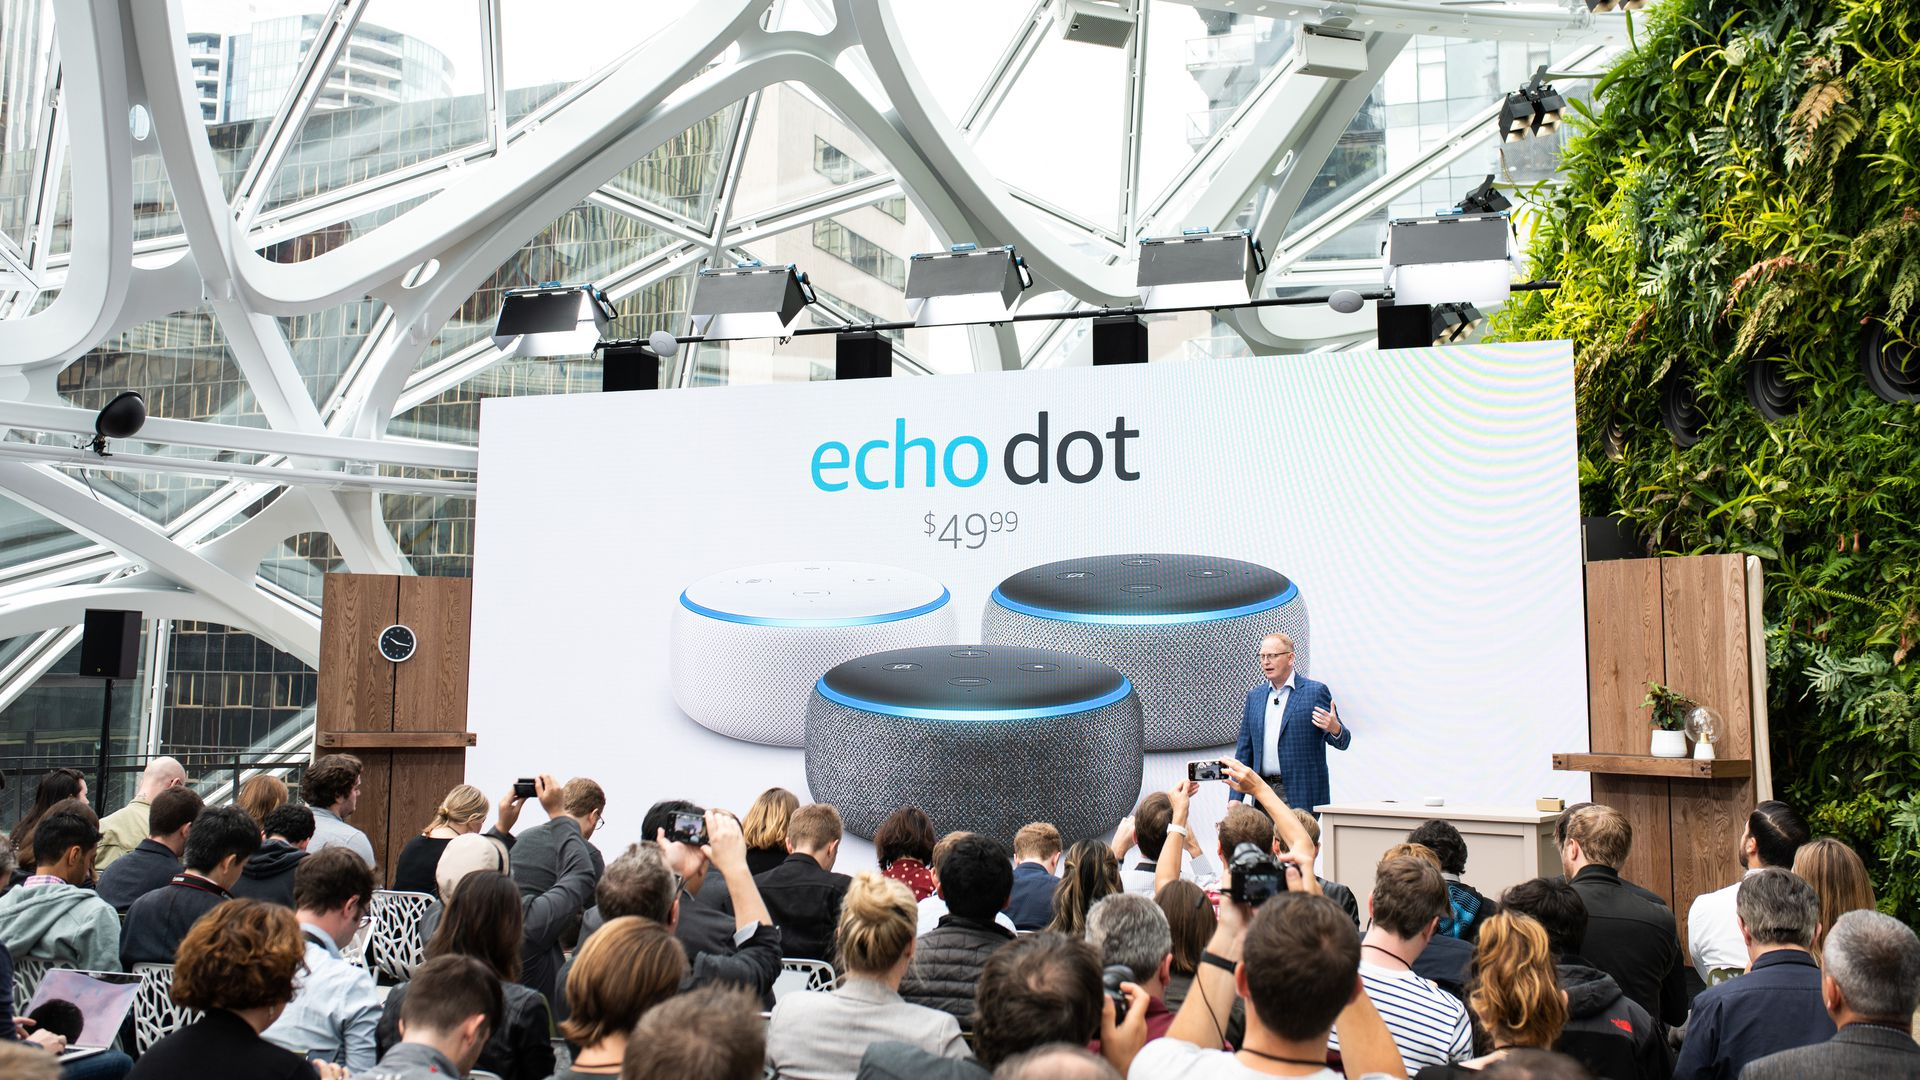 In this image, a crowd surrounds a stage that supports a large Amazon Echo Dot advertisement.